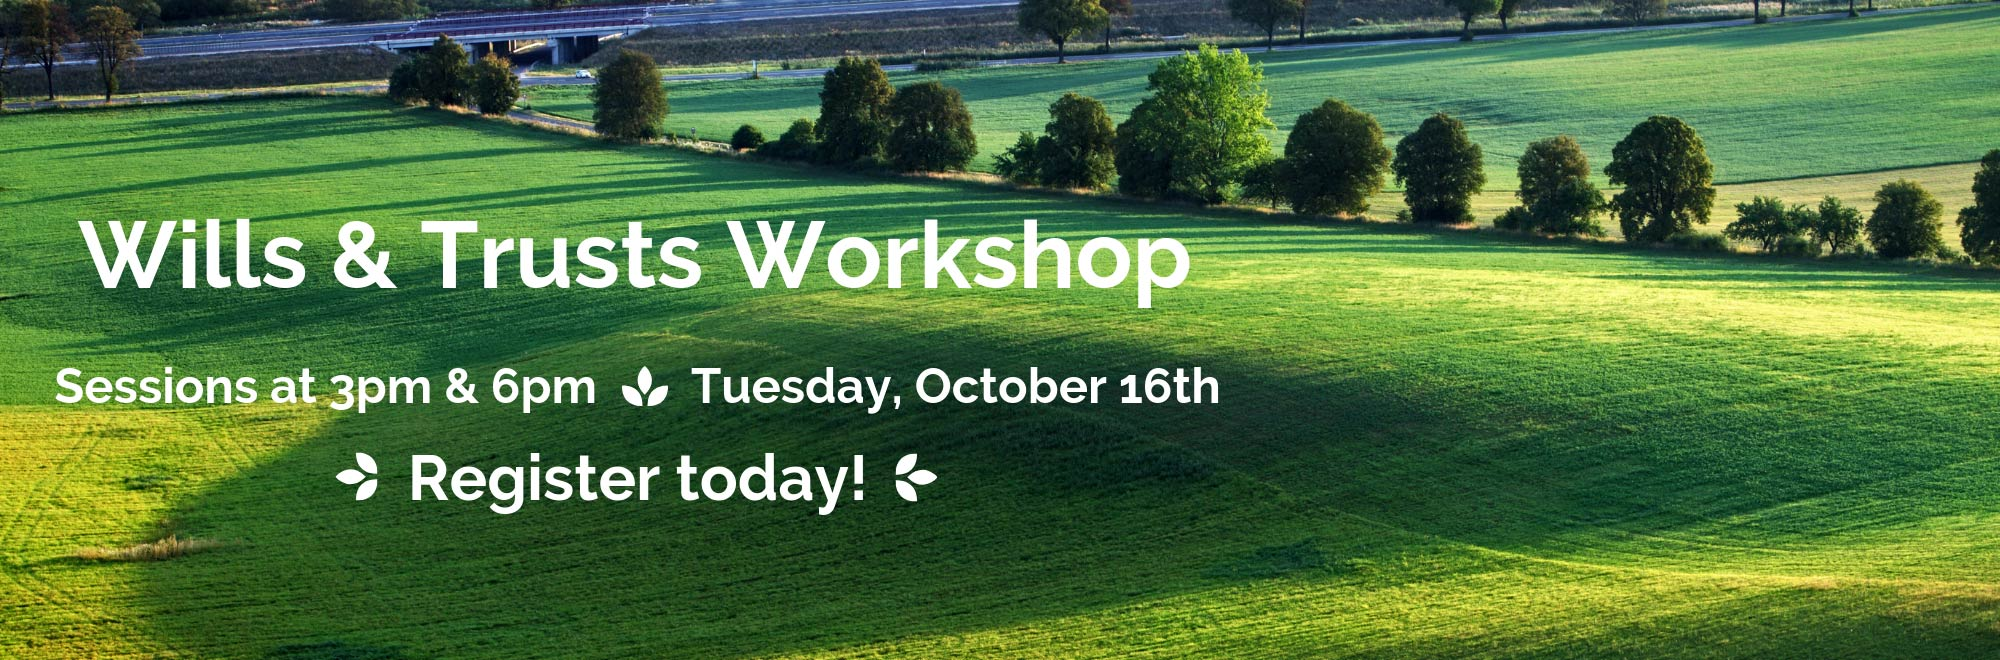 Wills and Trusts Workshop